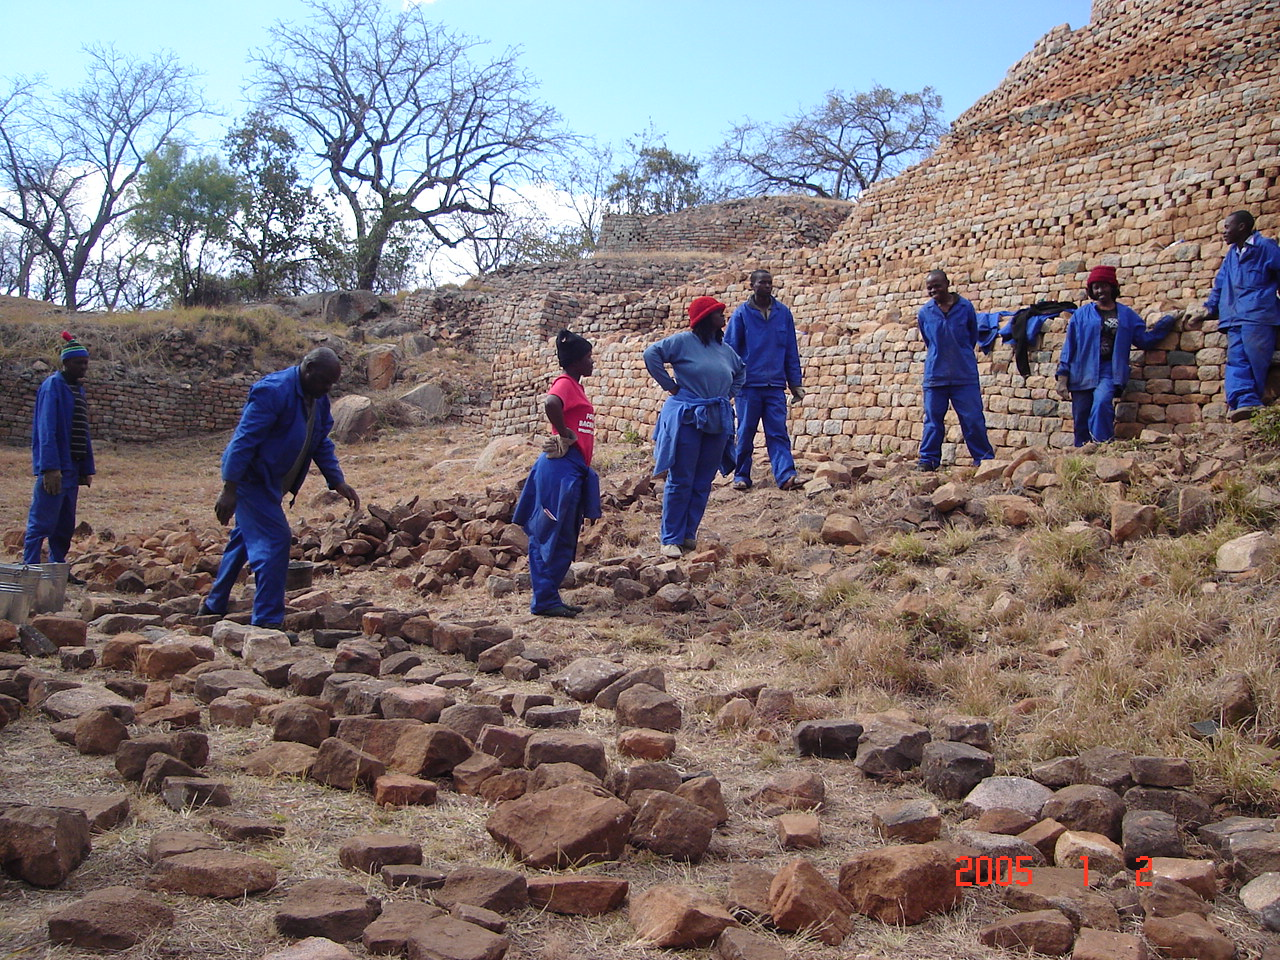 Proof for Khami Ruins National Monument